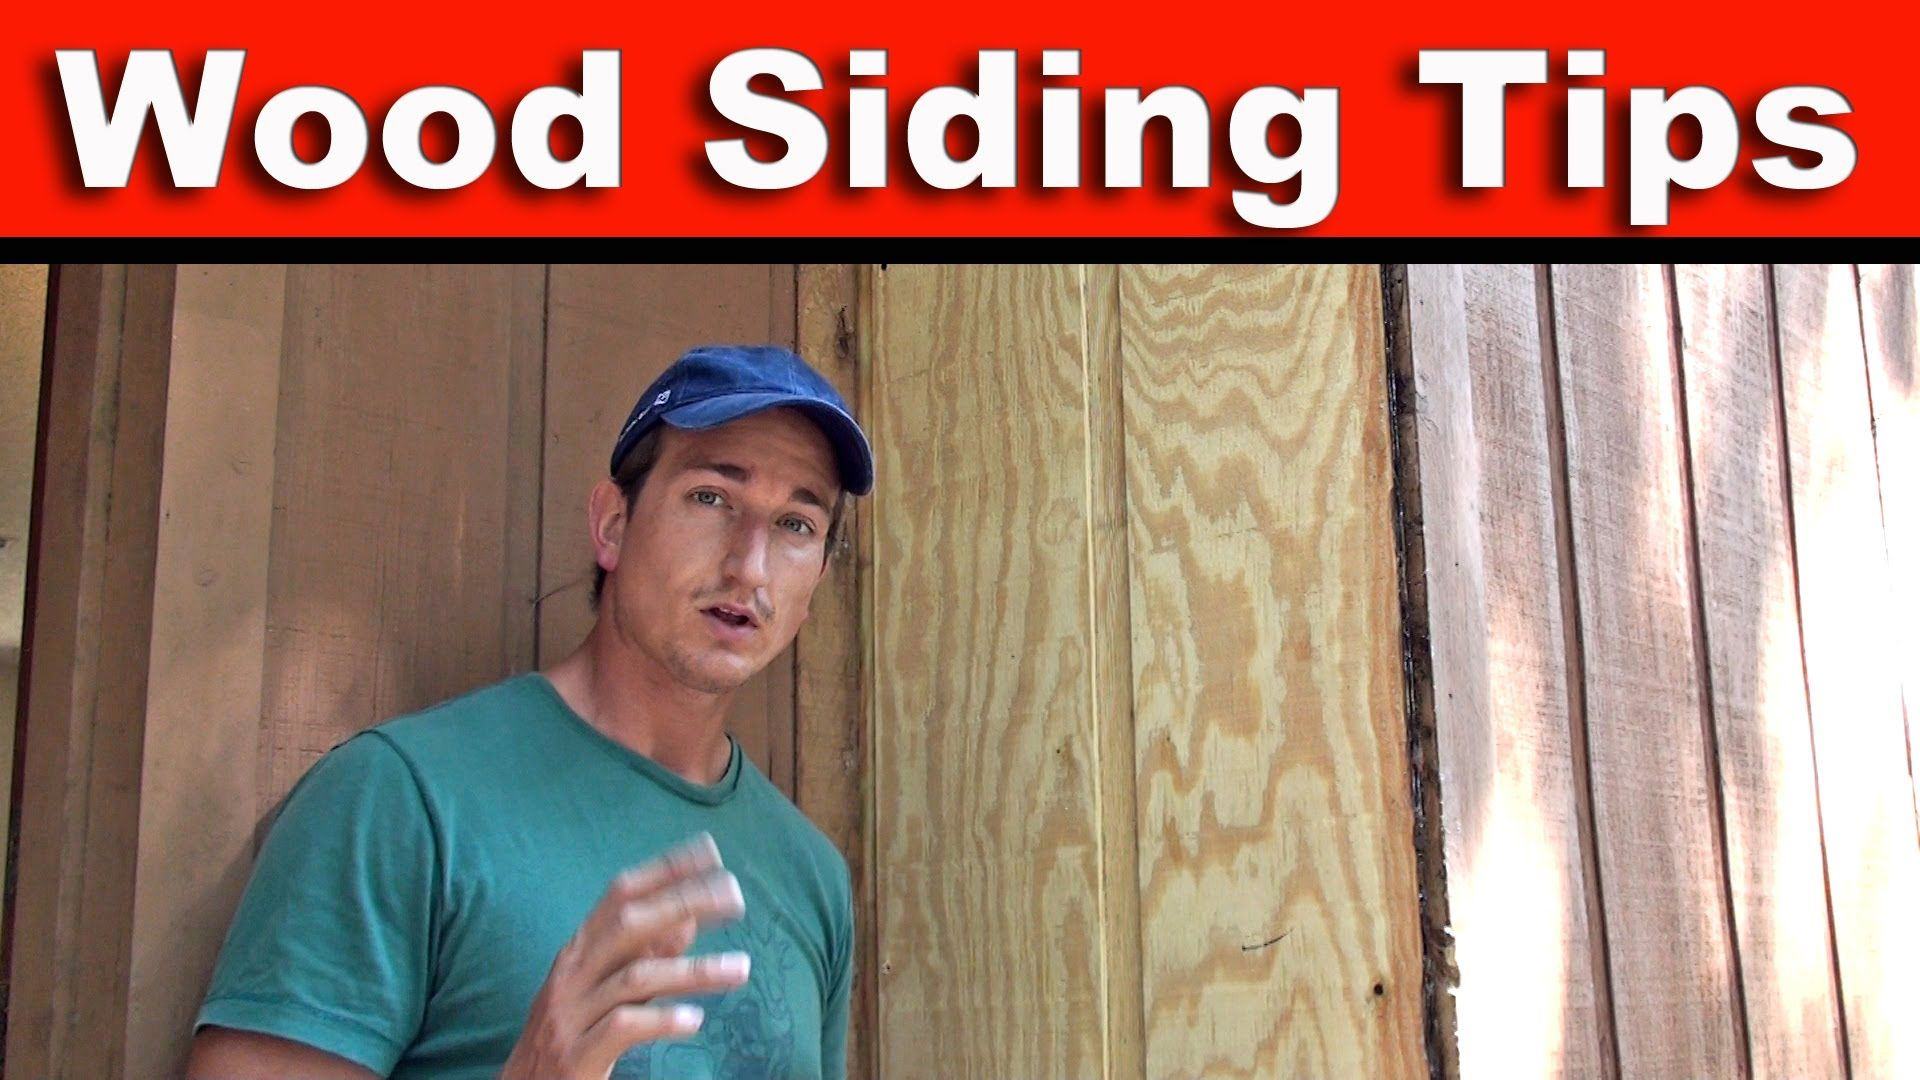 Installing Plywood Siding Tips And Tricks Using T1 11 Plywood Siding Masonite Siding Diy Siding